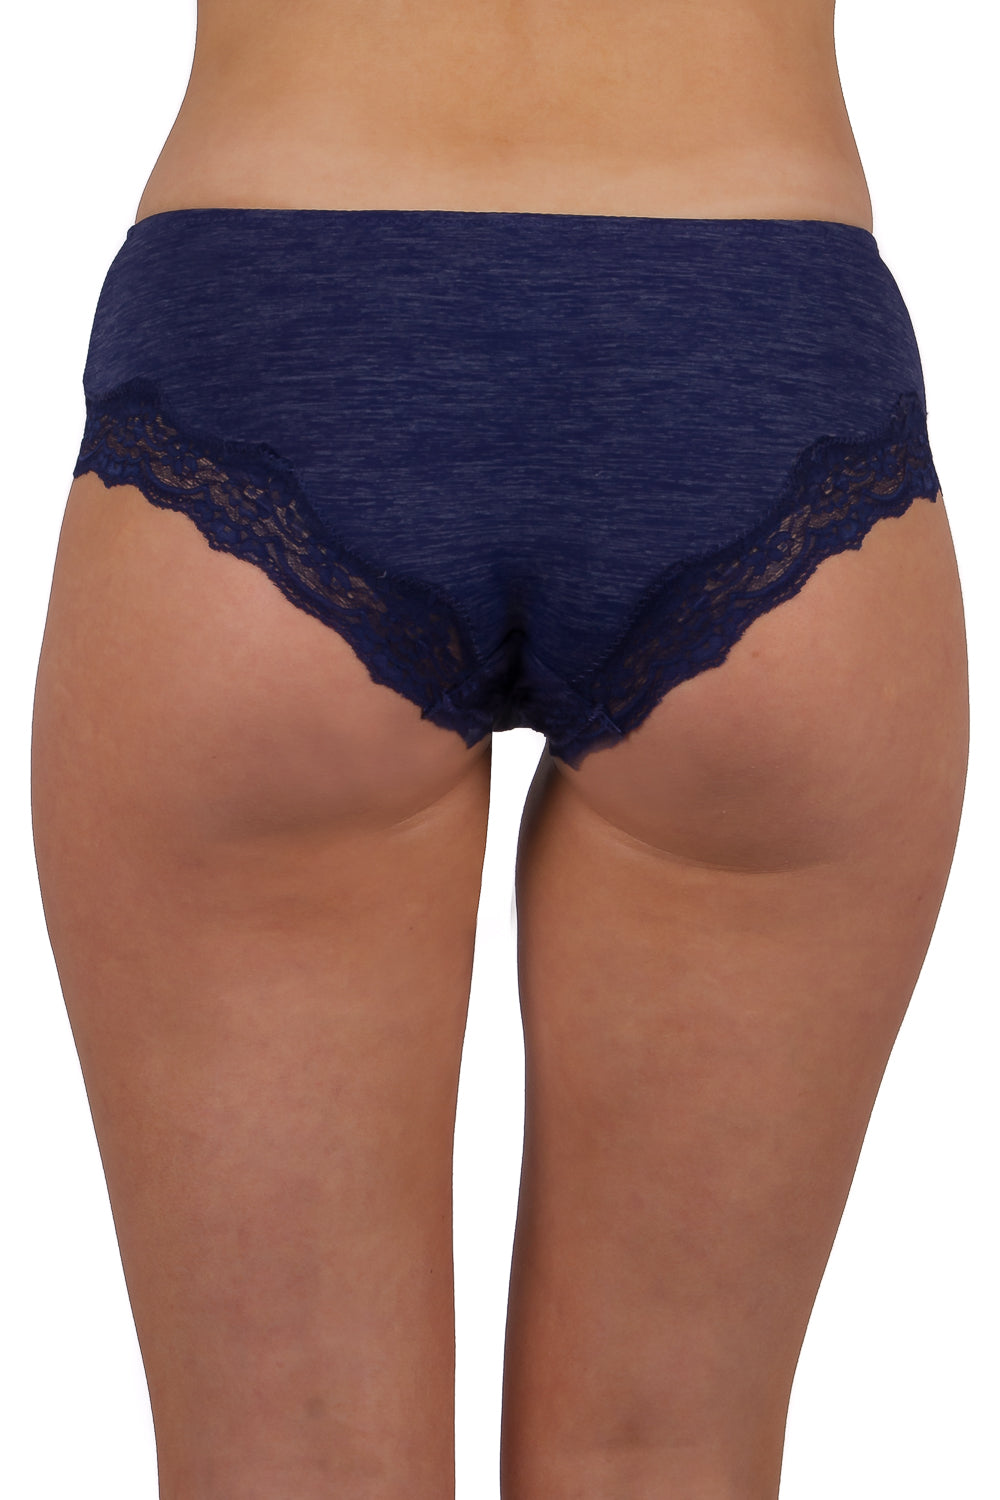 Woman wearing a pair of blue hipster panties with lace